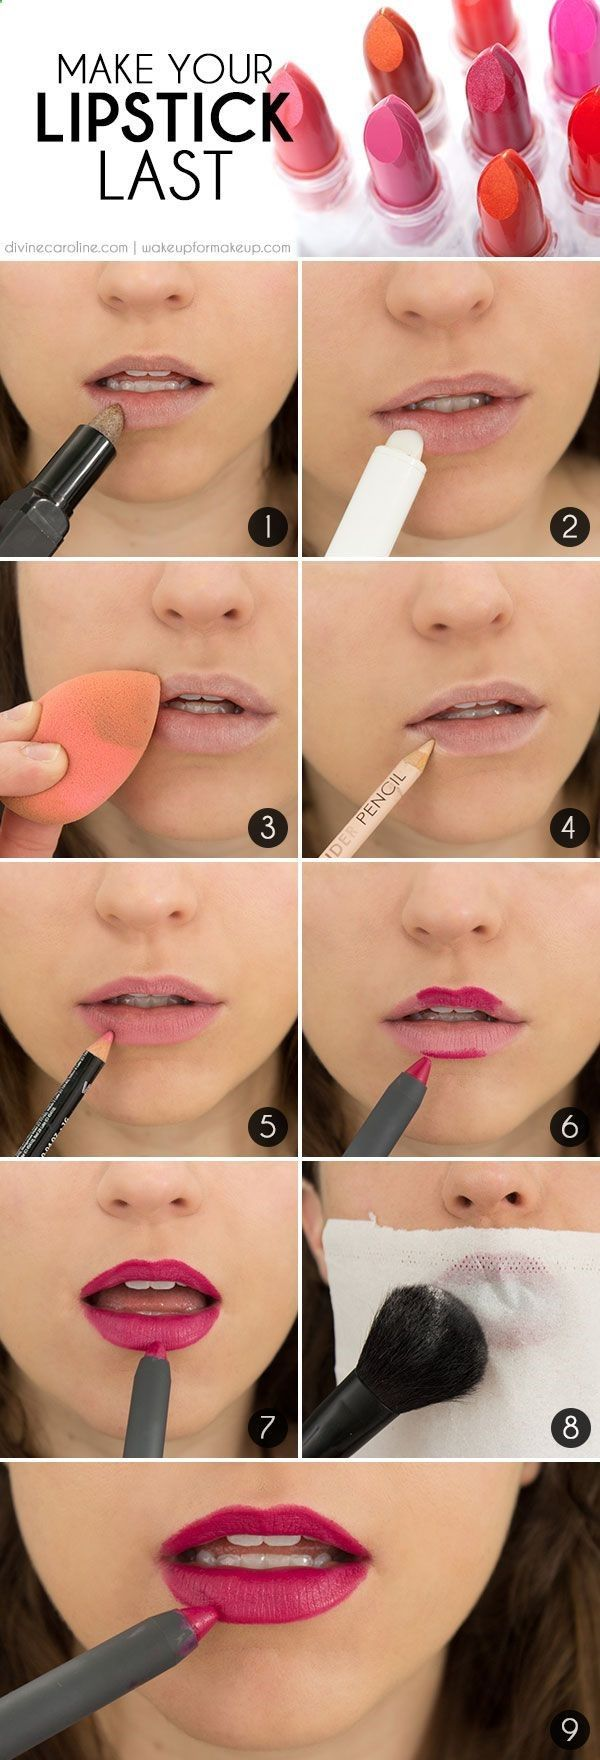 Blogger Ivy gives you a step-by-step on how to keep that lipstick where it belongs.